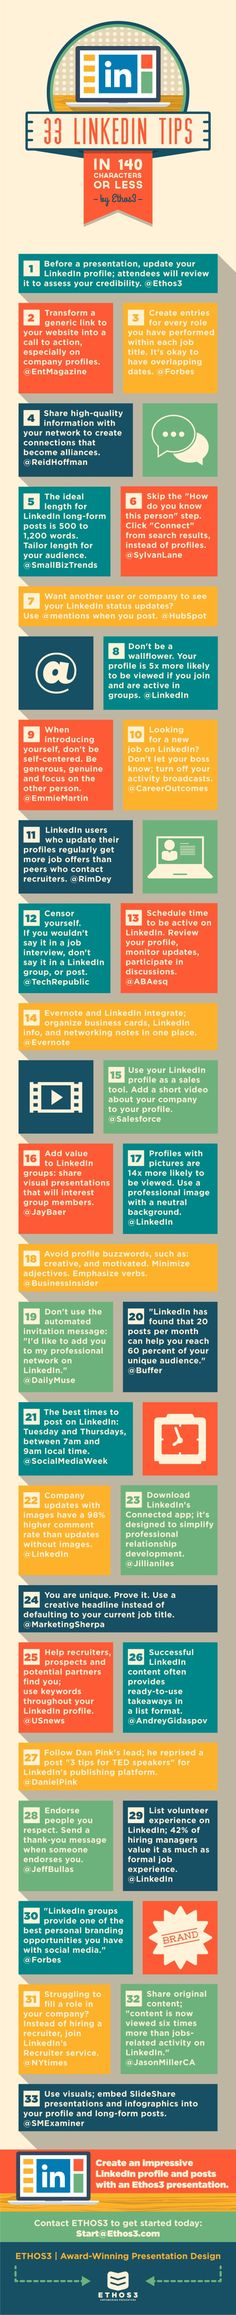 linkedin tips for business infographic from Groove Marketing Marketing Digital, Content Marketing, Internet Marketing, Online Marketing, Social Media Marketing, Business Marketing, Business Entrepreneur, Marketing Technology, Marketing Books